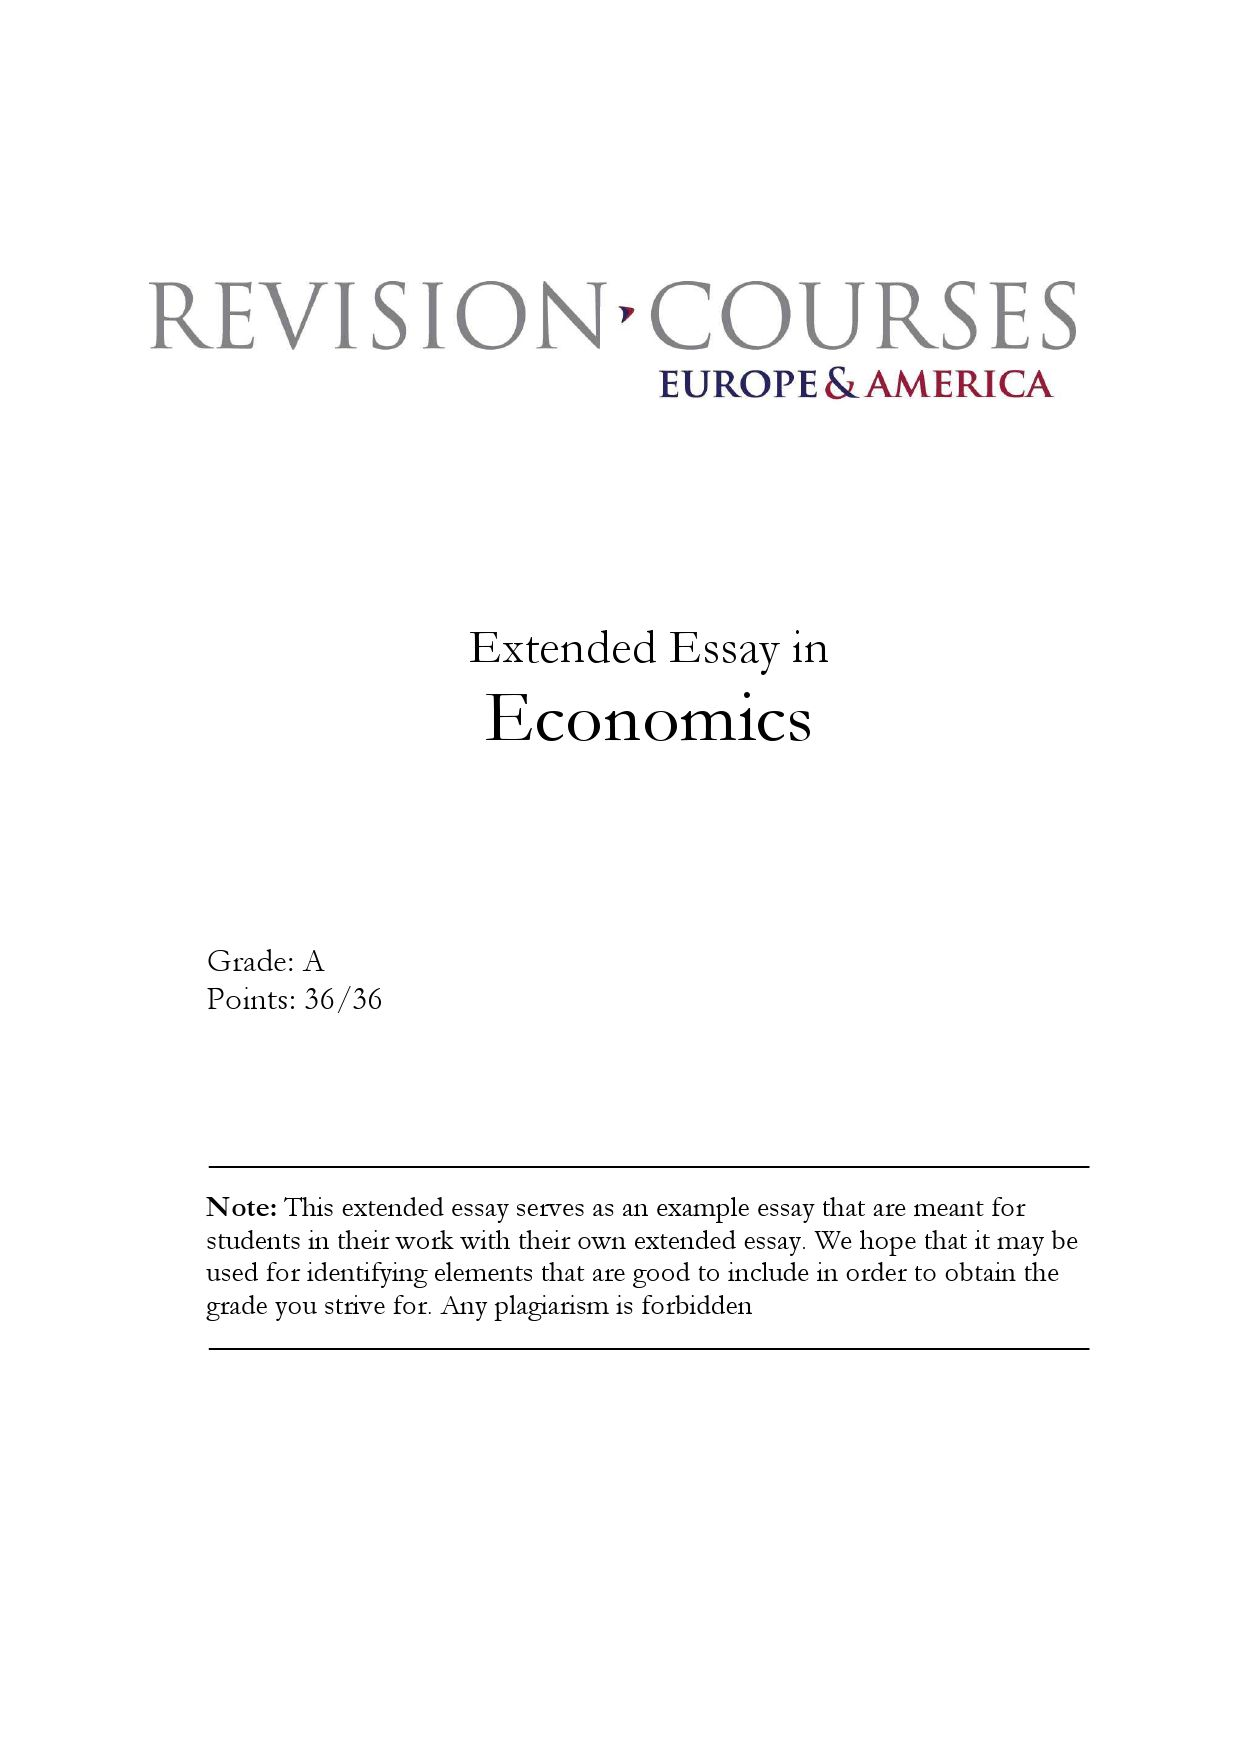 extended essay in economics by revision courses europe america  extended essay in economics by revision courses europe america issuu